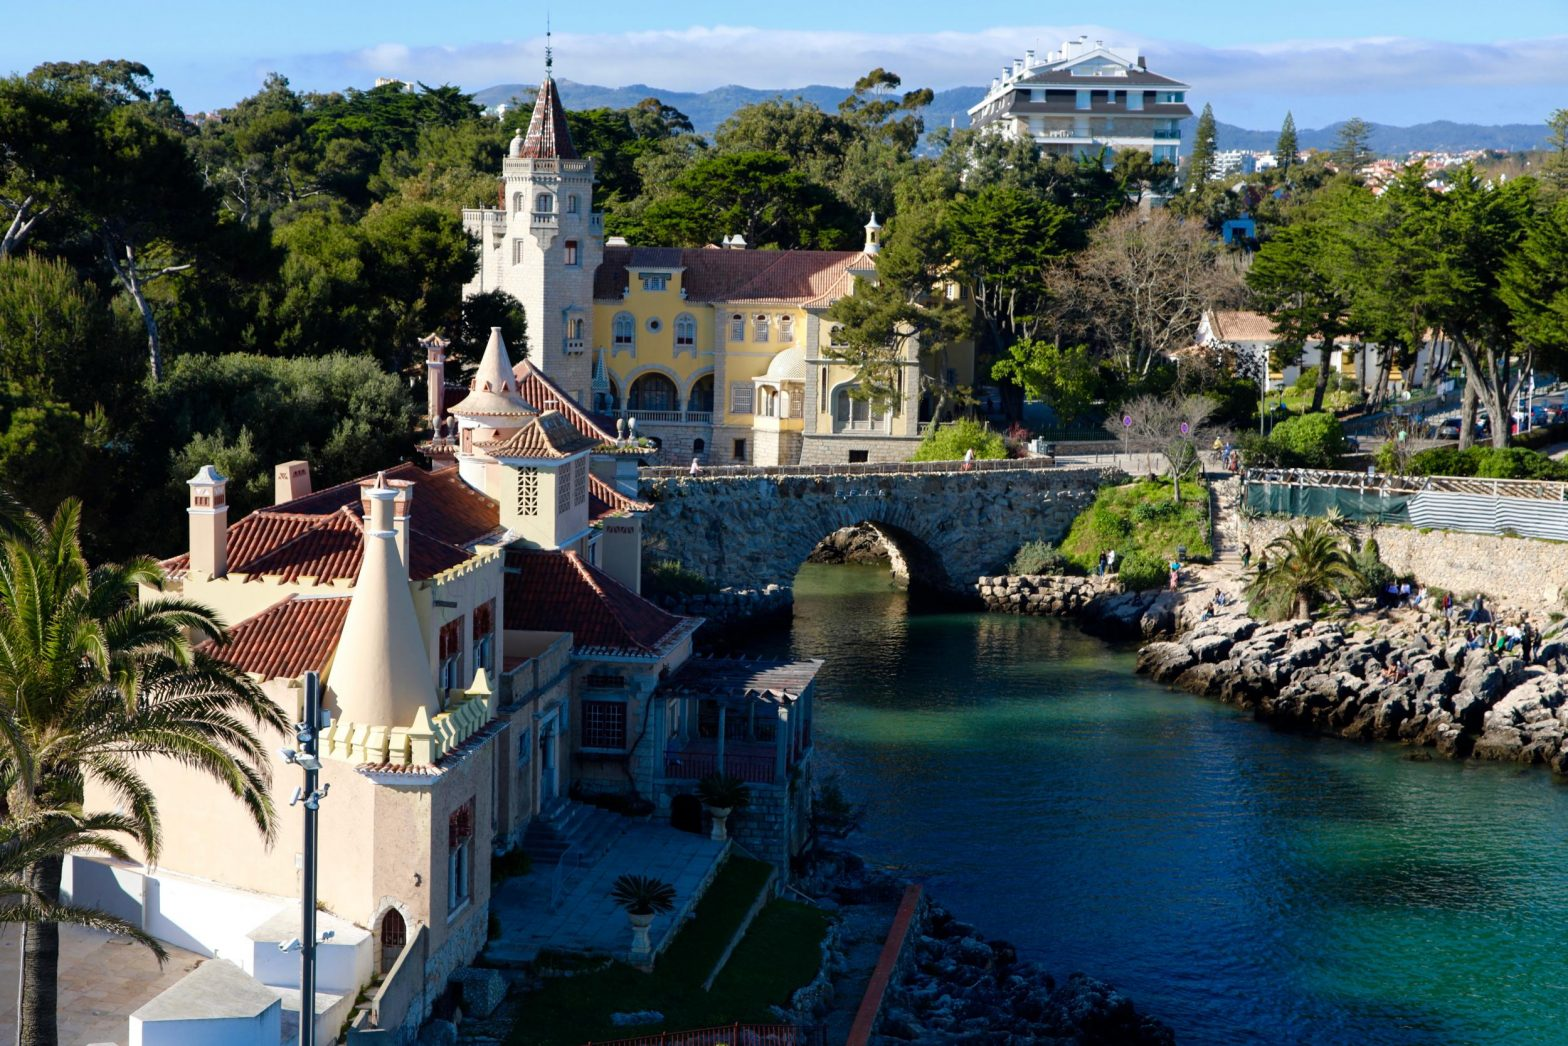 Cascais guide: Where to eat, drink, shop and stay at Lisbon's perfect seaside counterpart